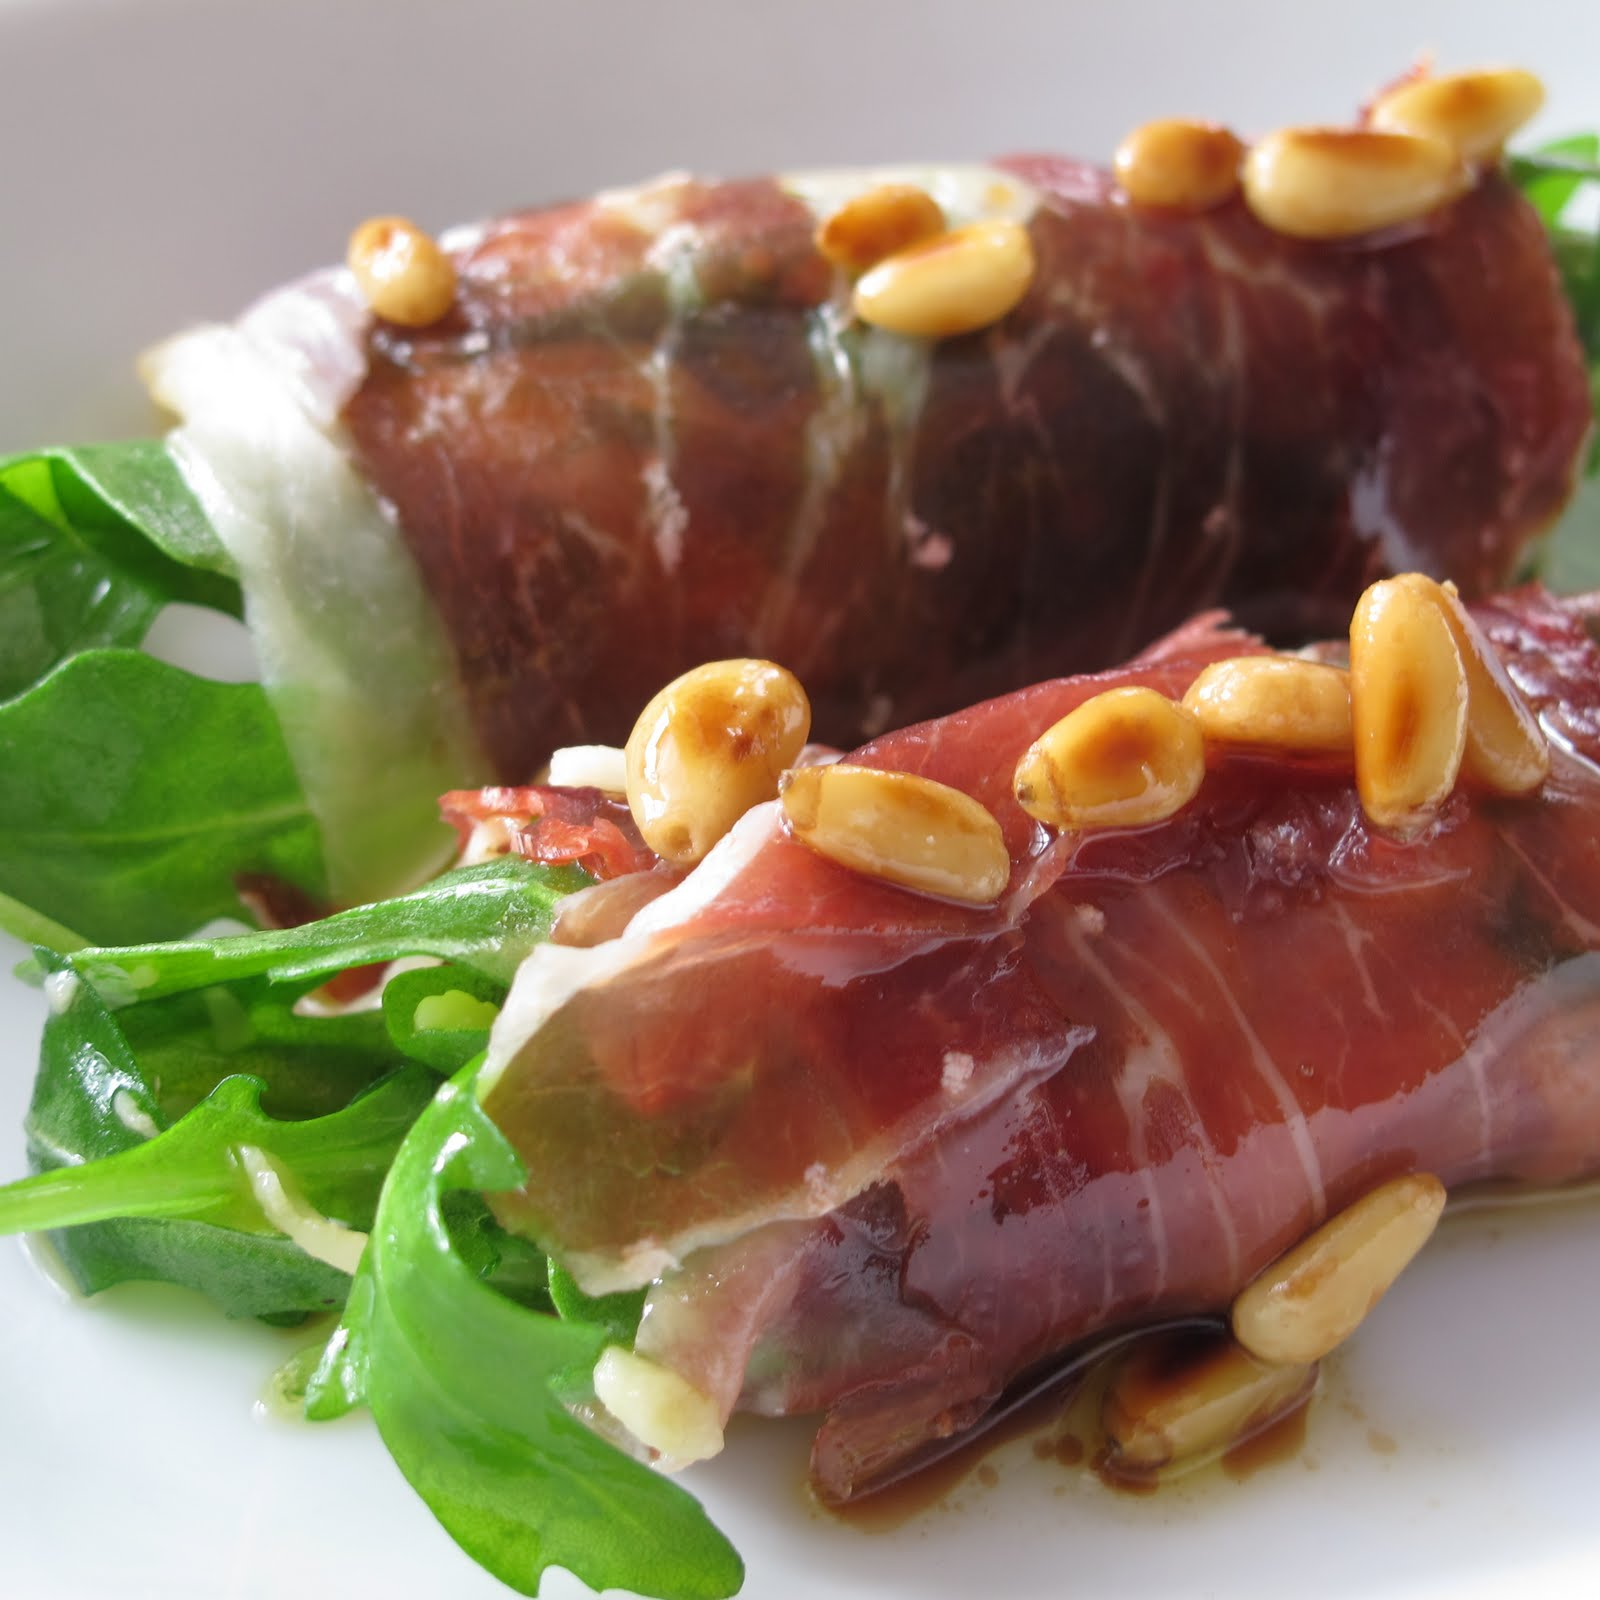 Jamón Ibérico rolls with Arugula and Pine Nuts